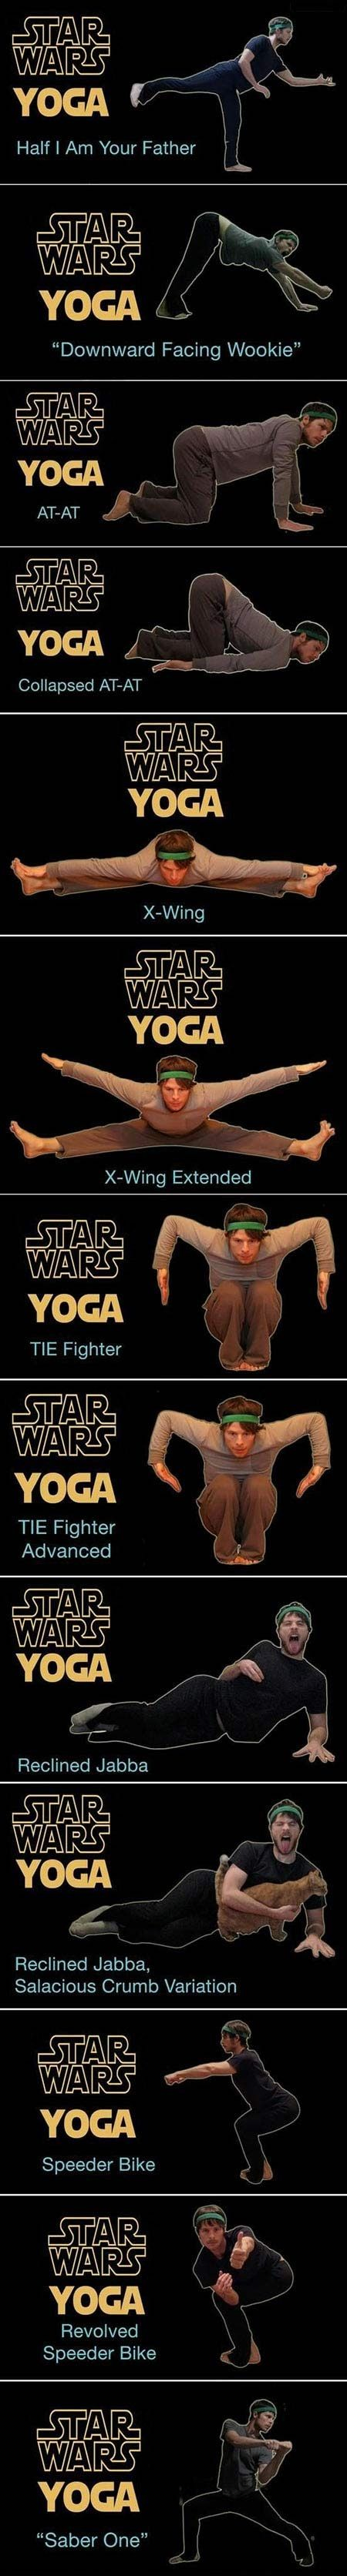 Star Wars Yoga. I don't do yoga, but this is hilarious!